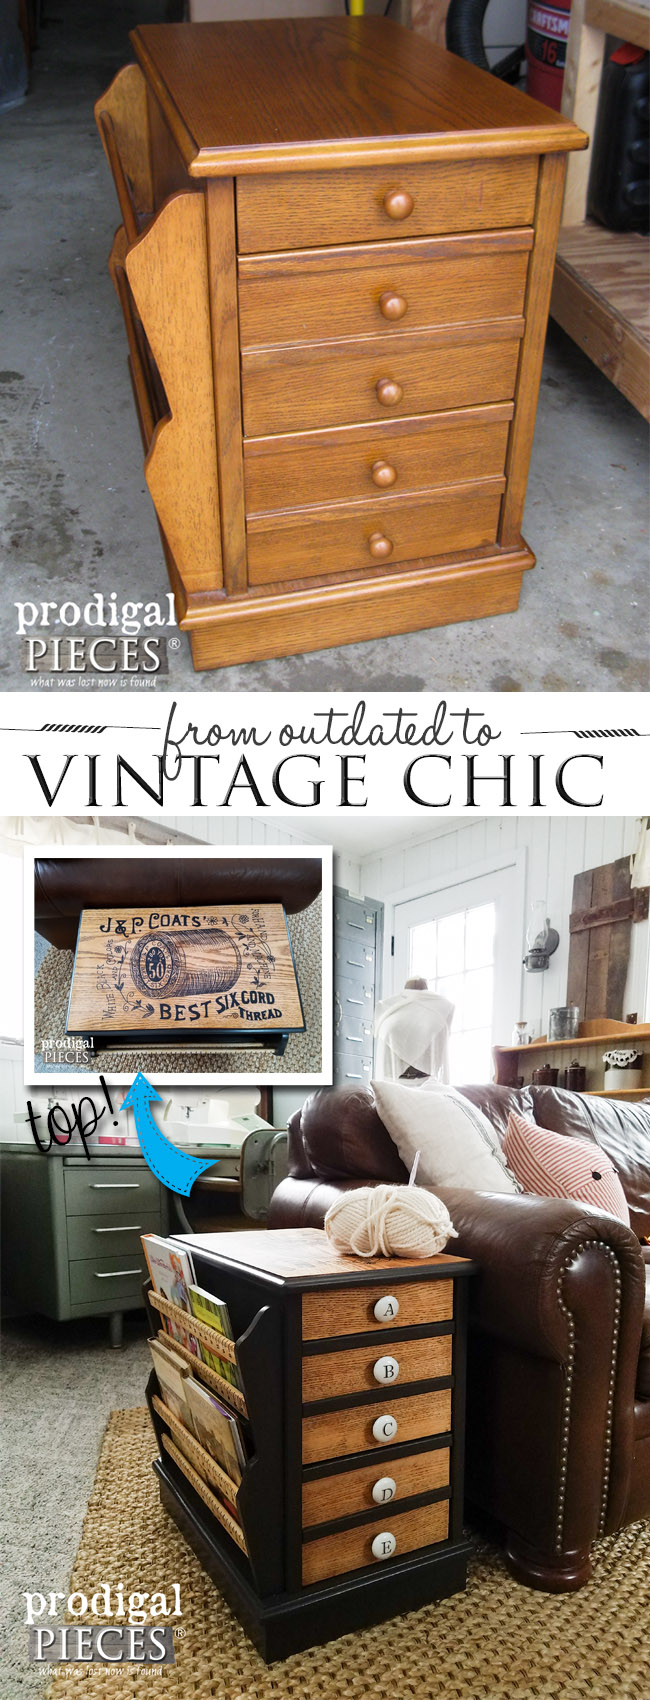 Sewing Table With Vintage Chic Vibe Prodigal Pieces